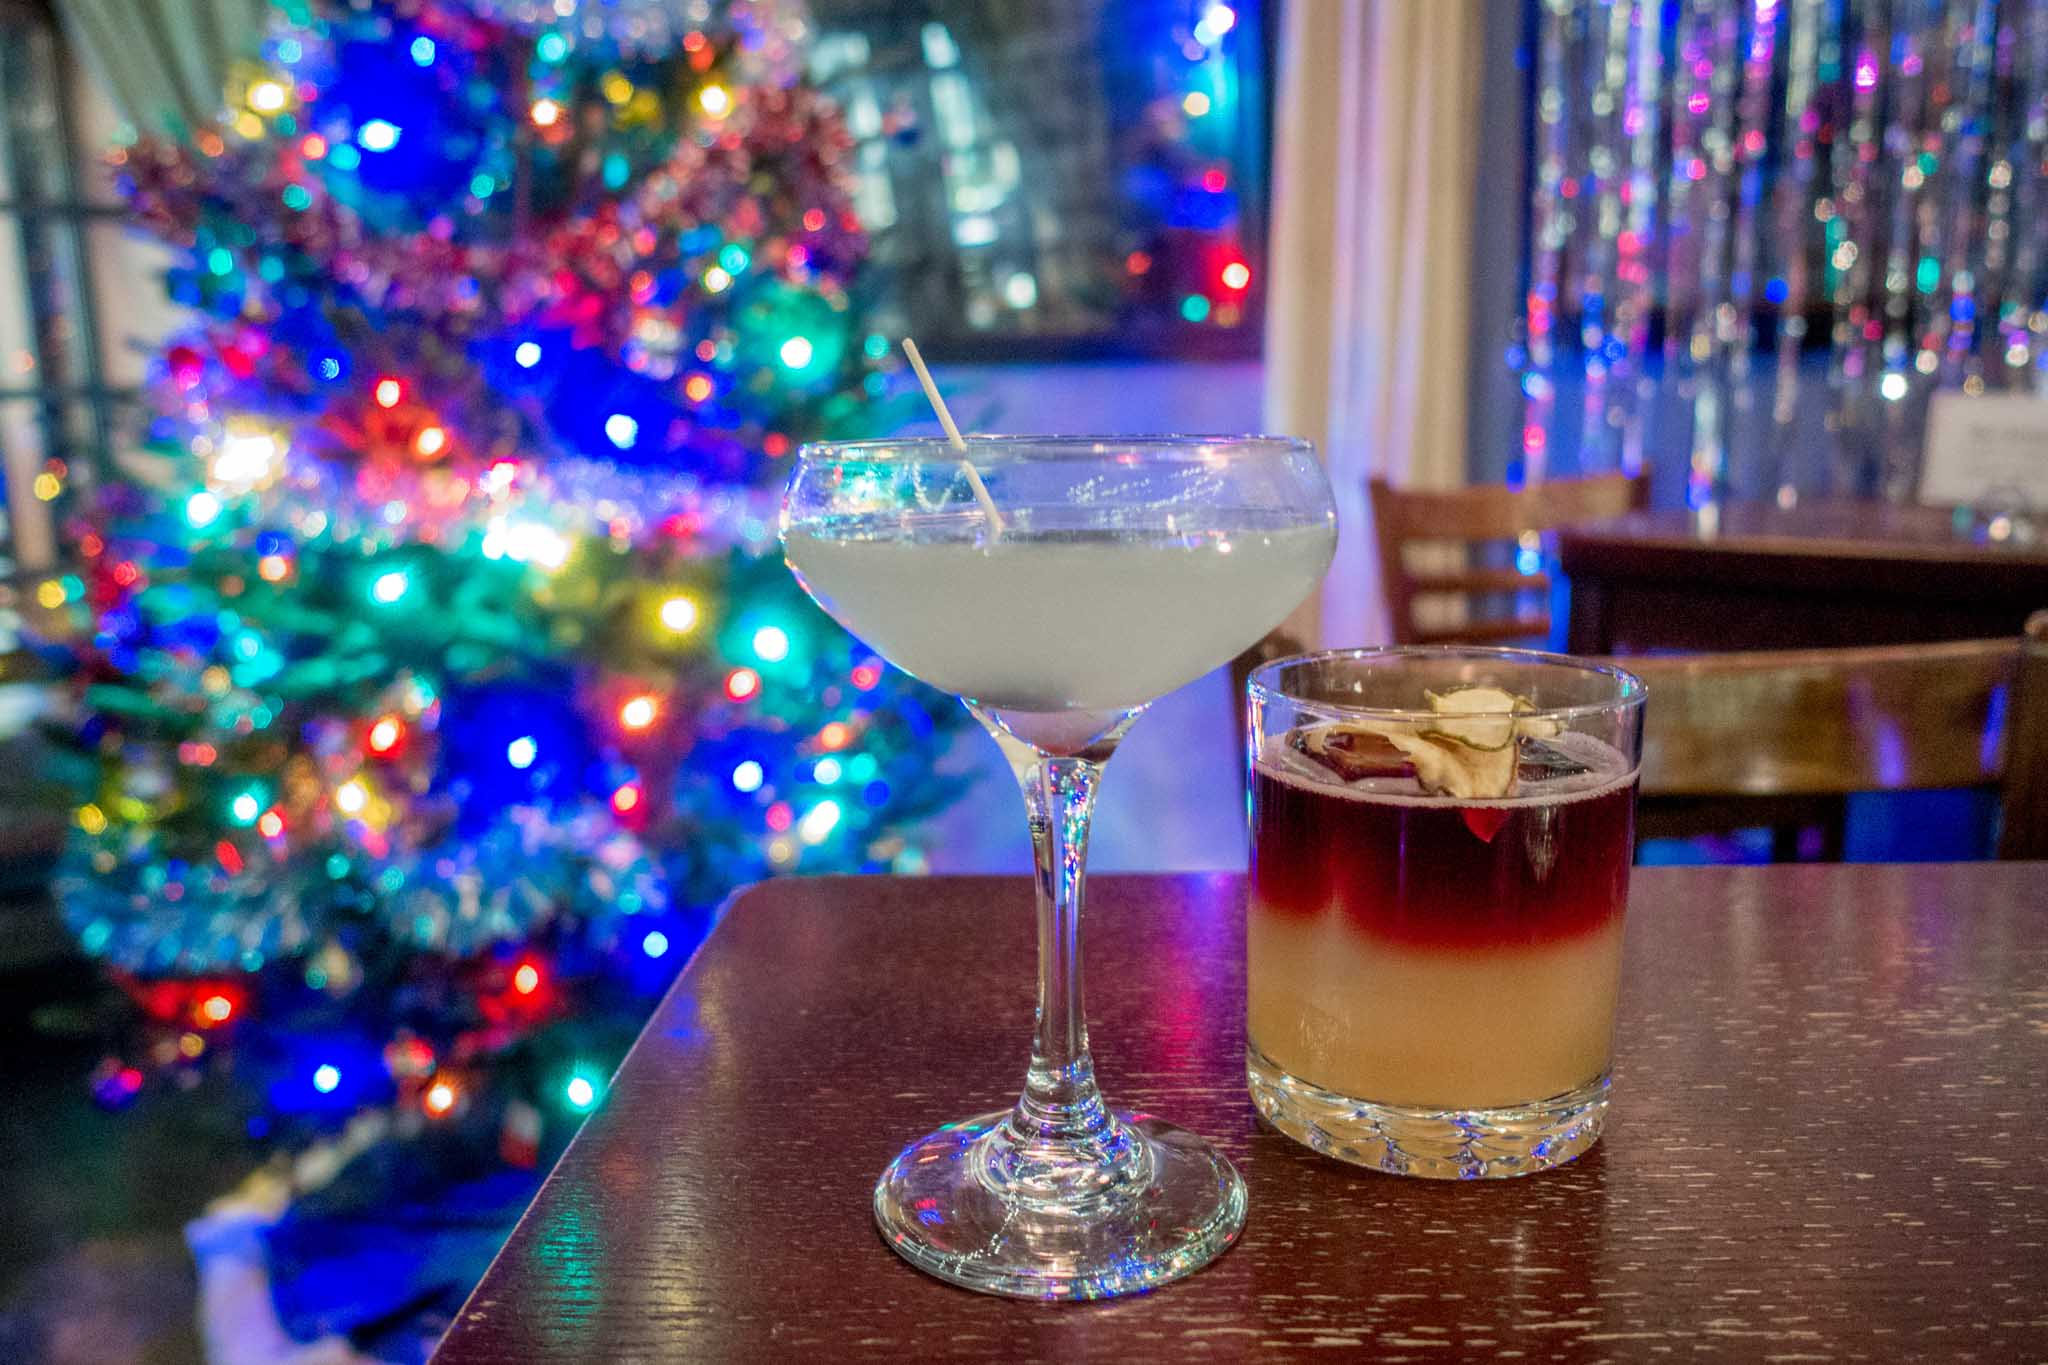 Cocktails on a table in front of a Christmas tree